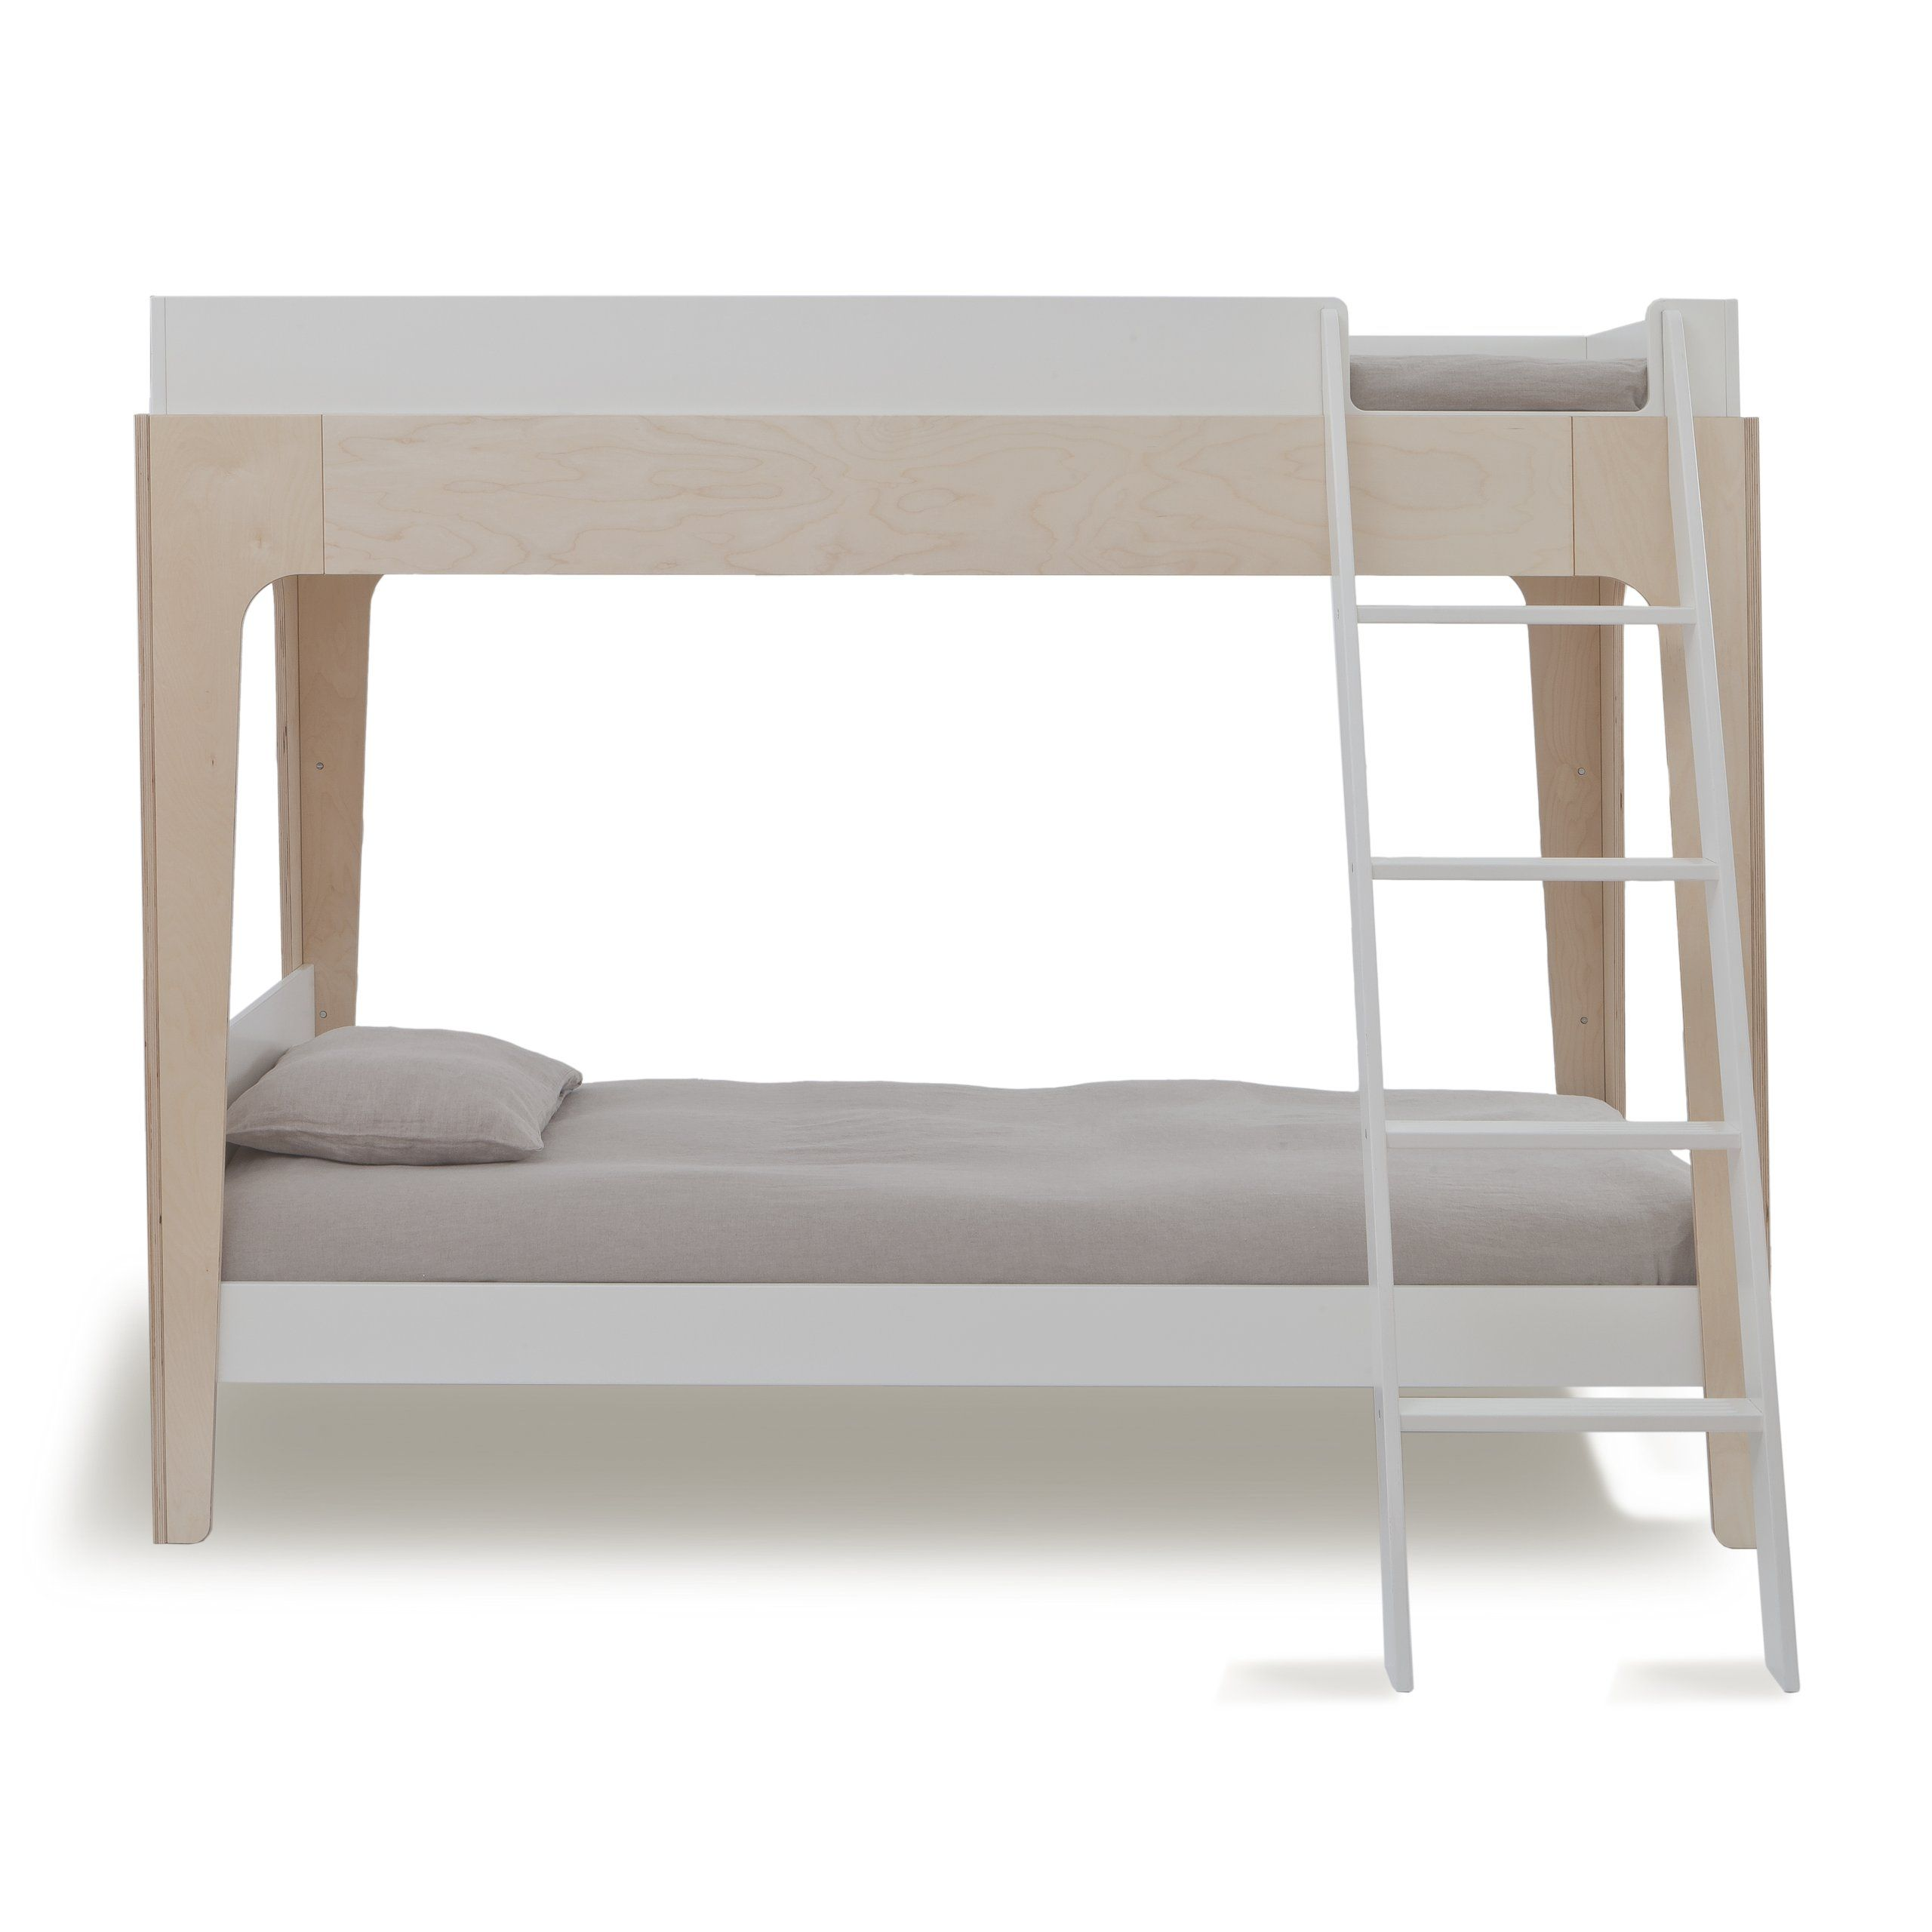 Oeuf Perch Bunk Bed Birch/White (Box 1) Bunk beds with